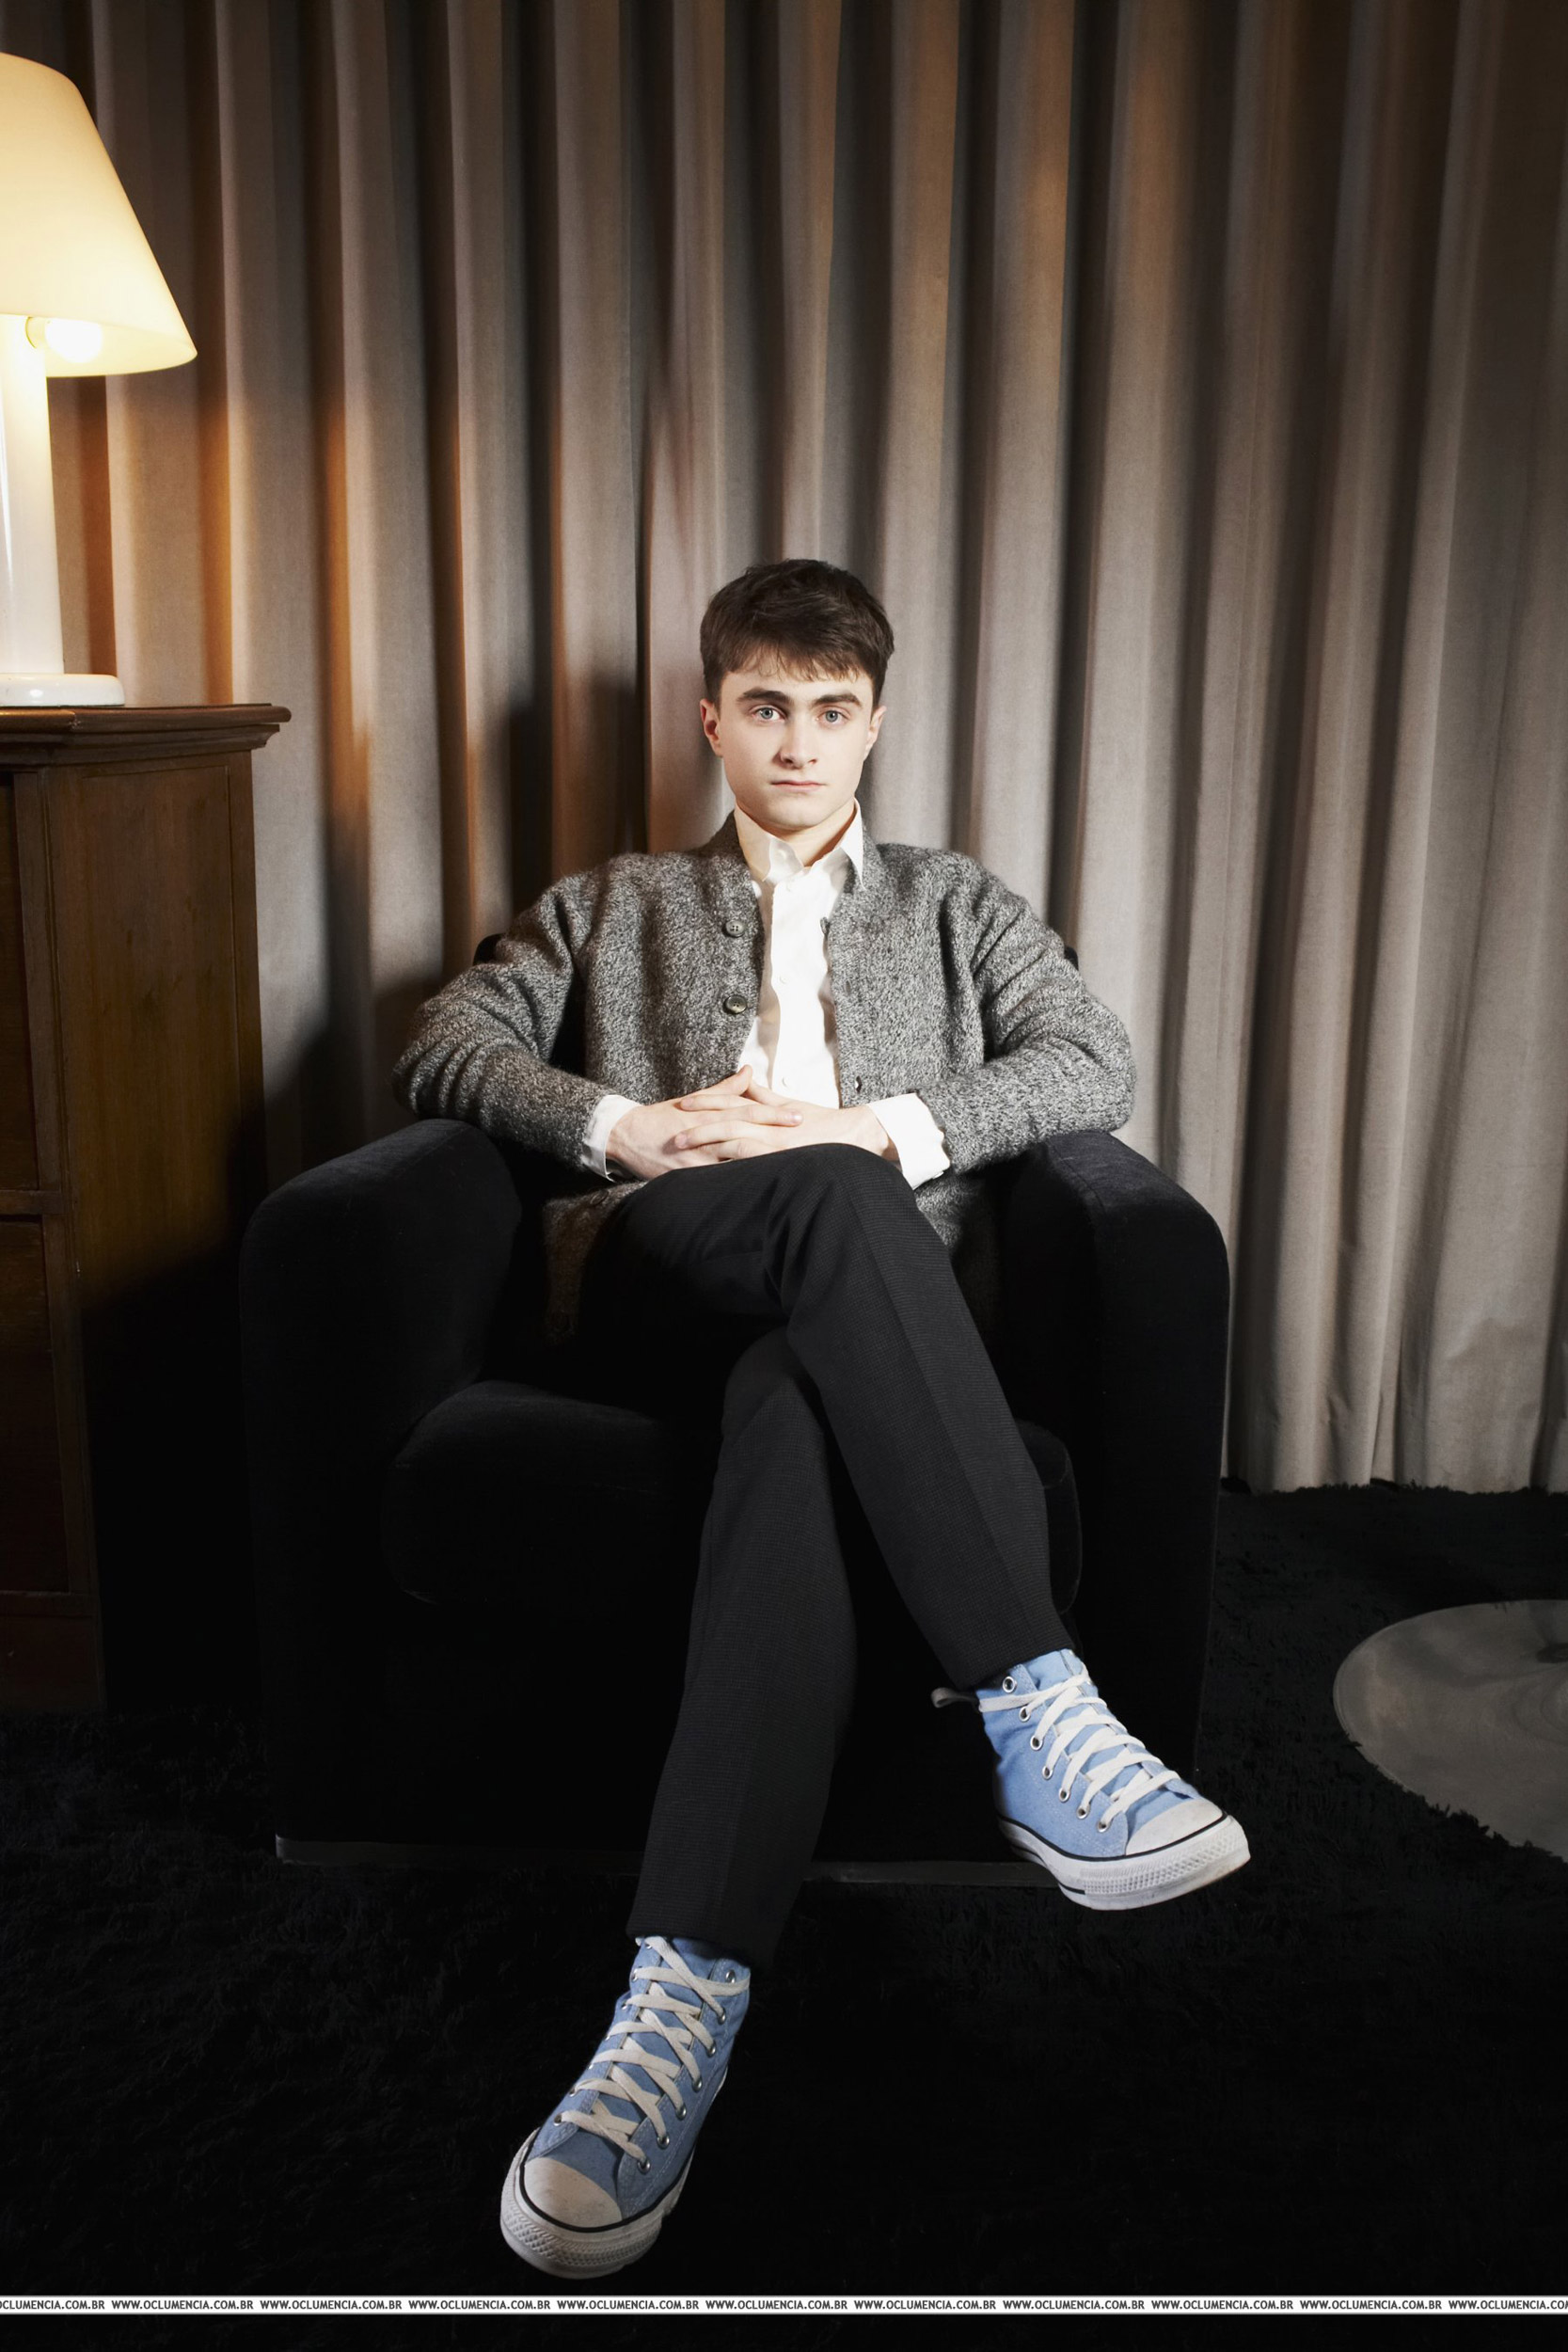 http://potterland.ru/uploads/posts/2009-09/1252670059_daniel_radcliffe_shoot2007.jpg